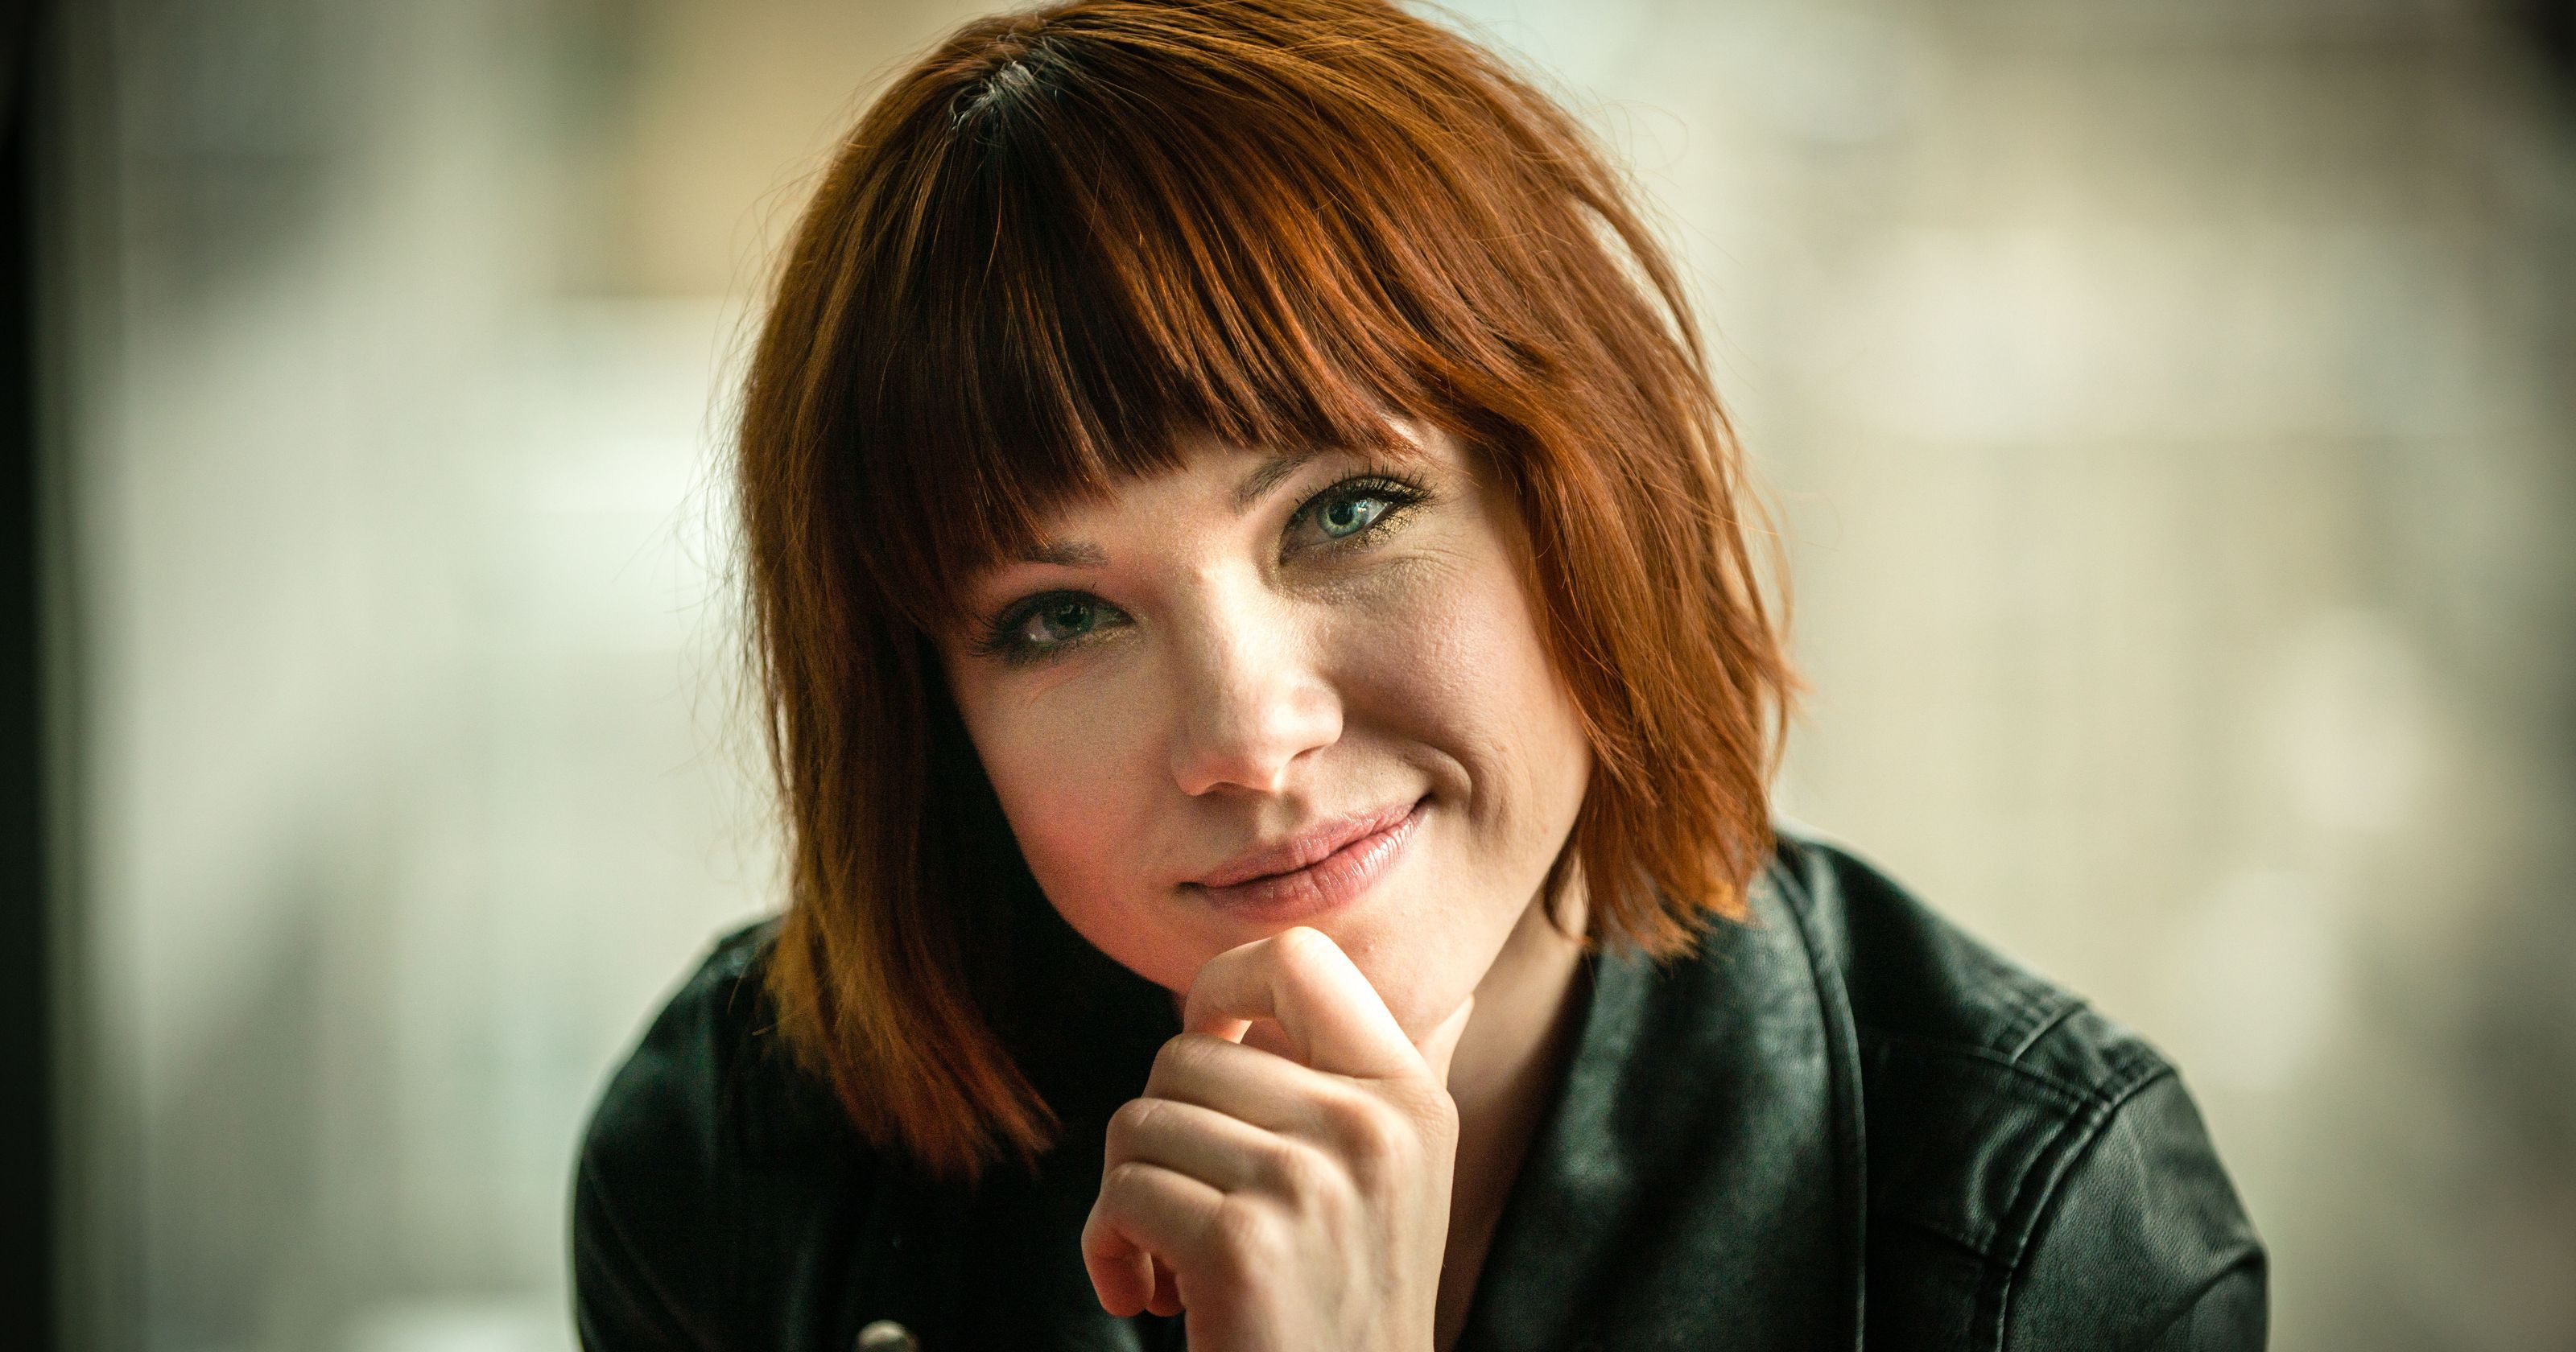 Pictures Of Carly Rae Jepsen